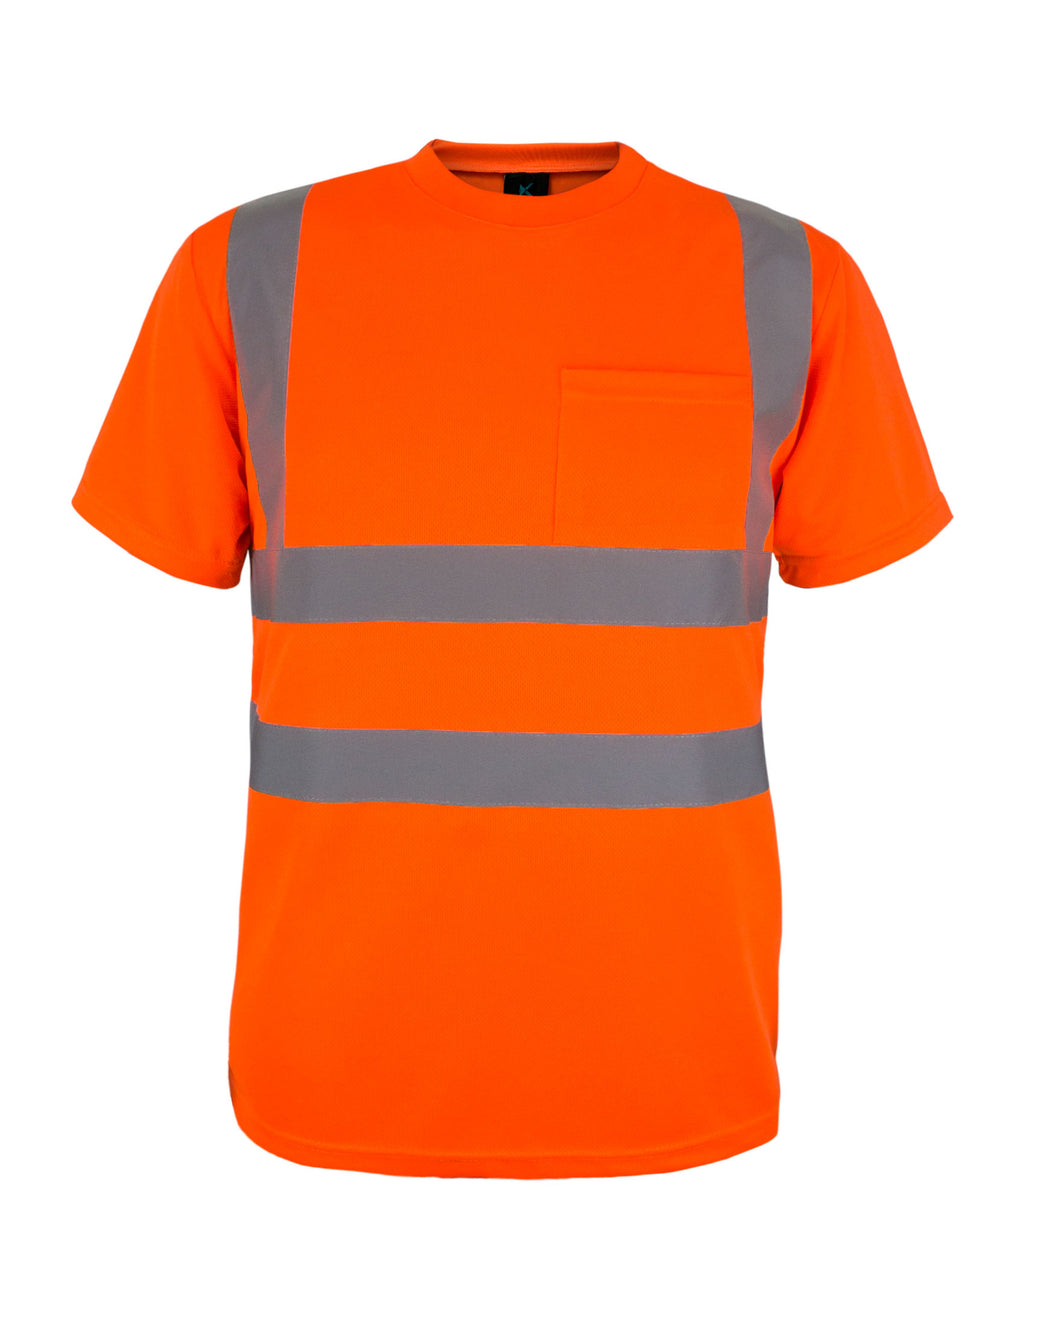 Kolossus 100% Polyester ANSI Class 2 Compliant High Visibility Short Sleeve Safety Shirt - Orange